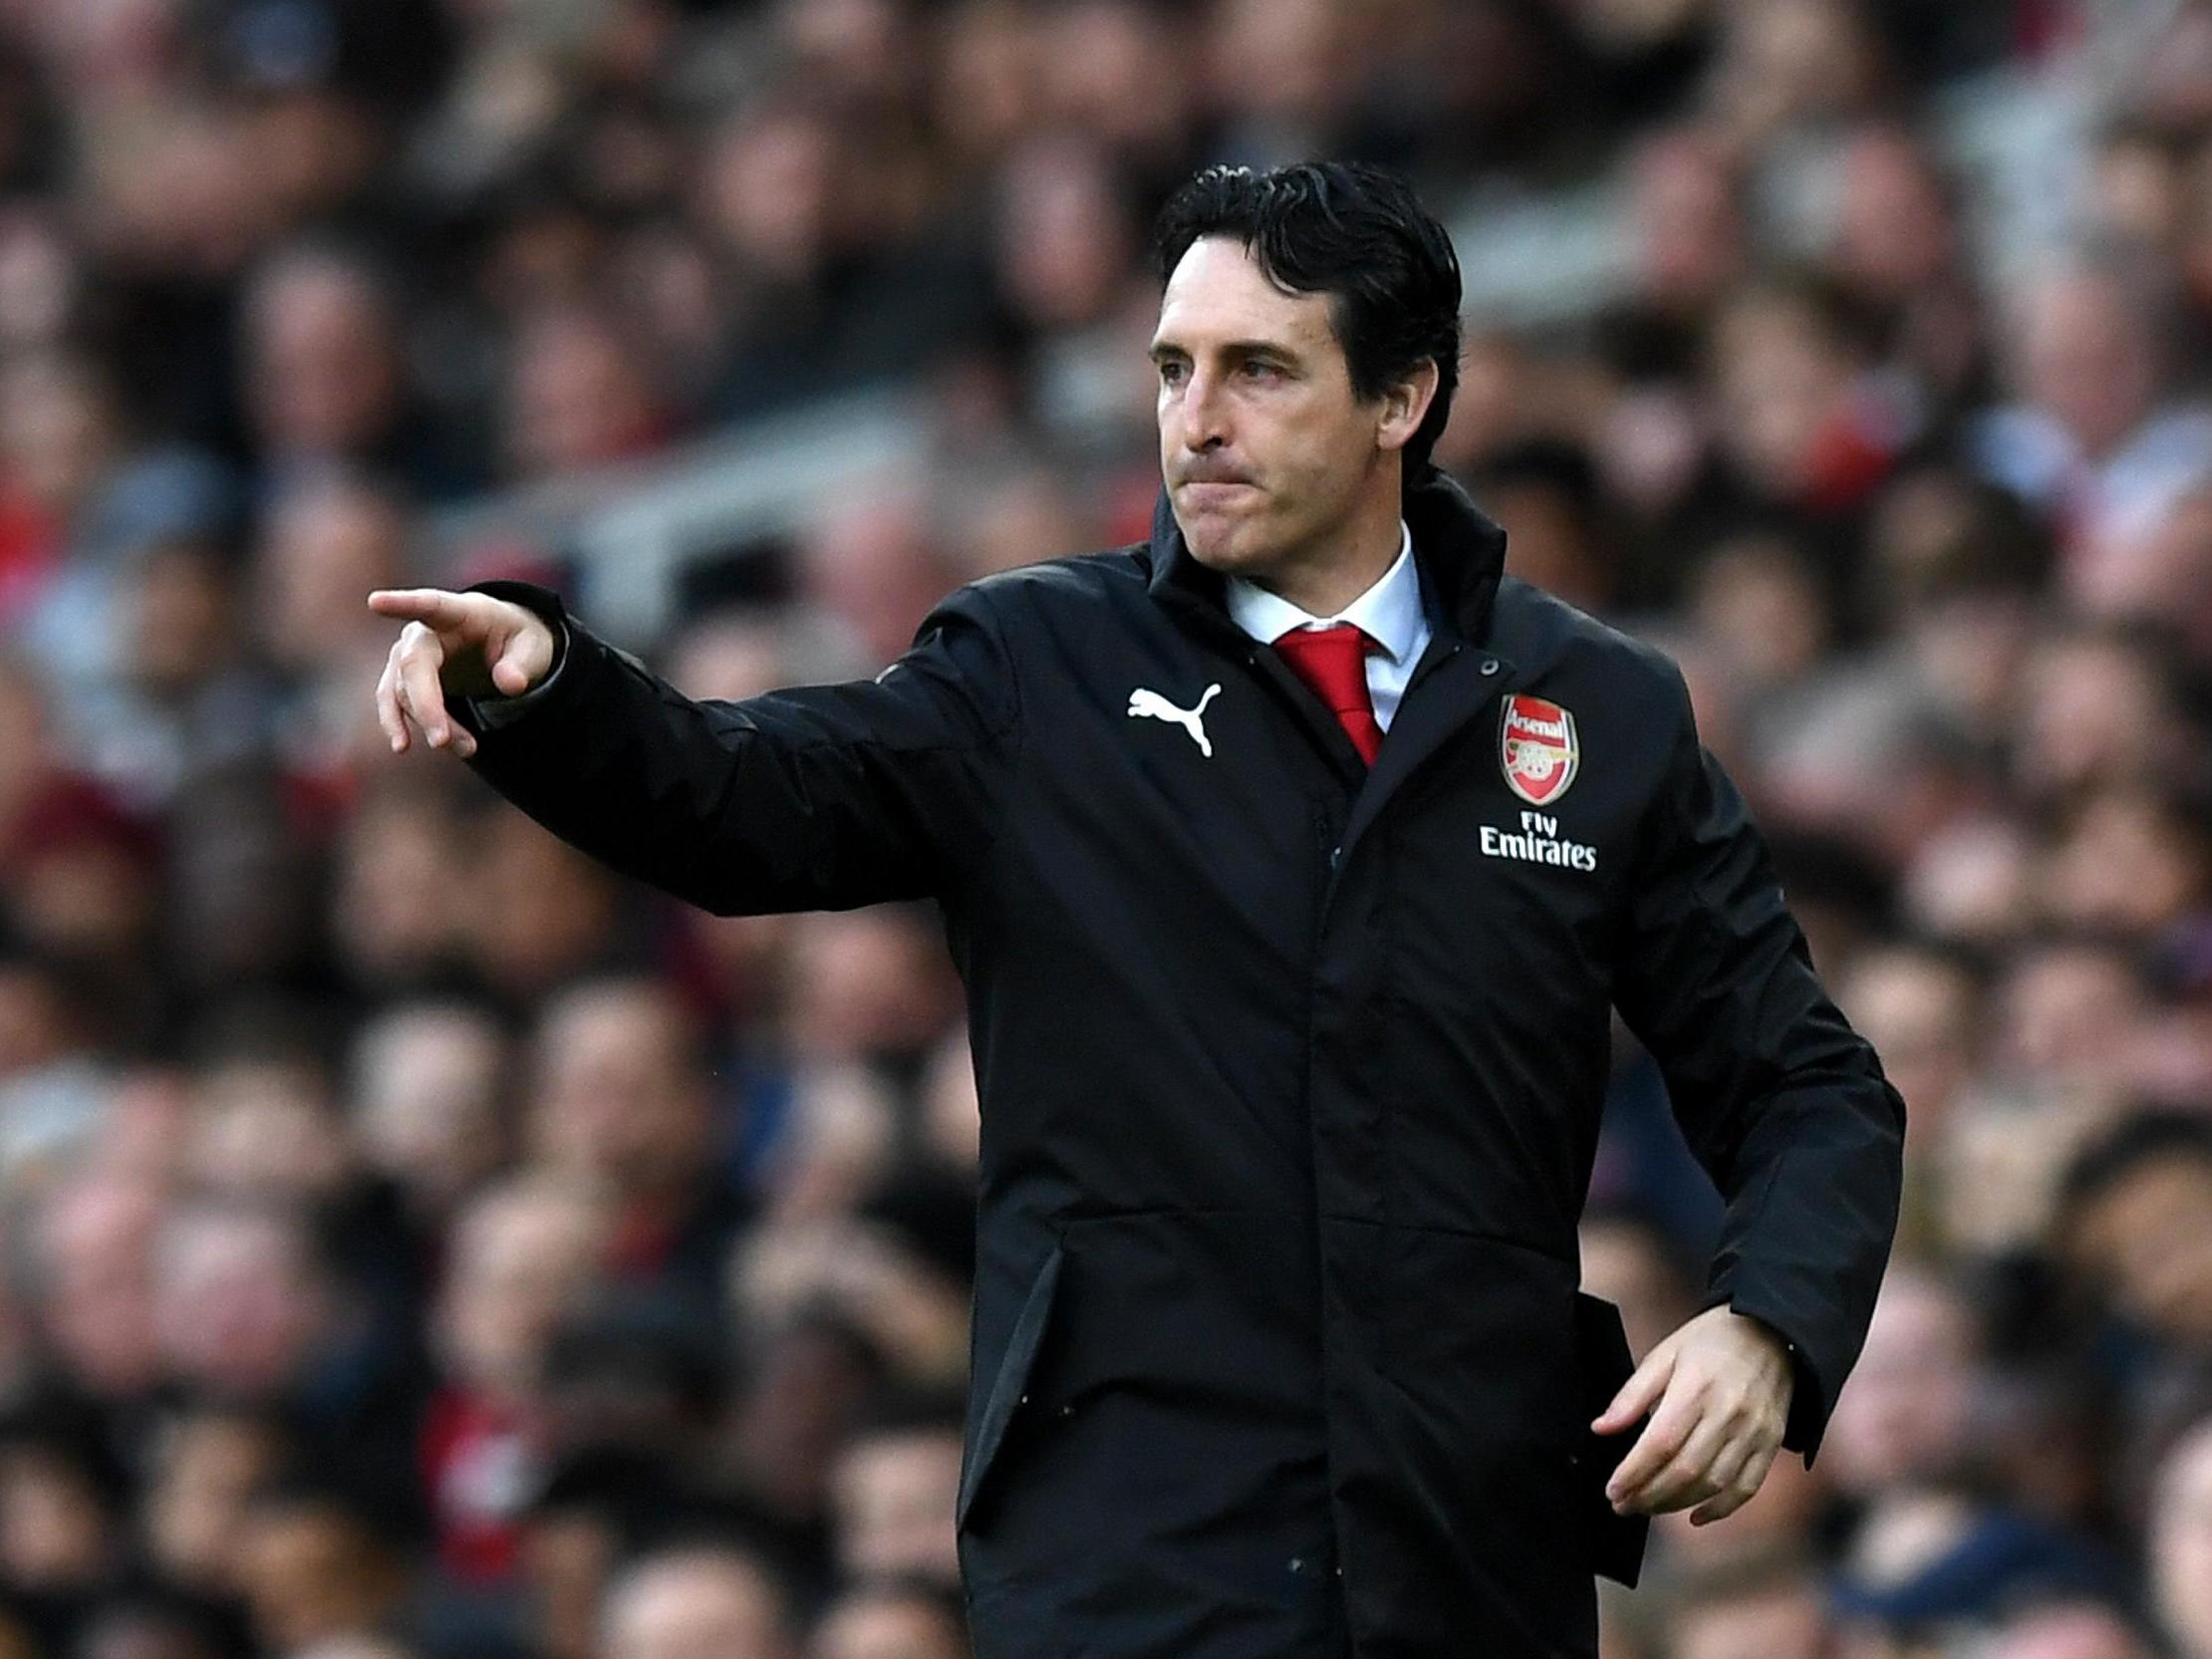 'Wenger would never lose this match' - Arsenal fans turn on Unai Emery